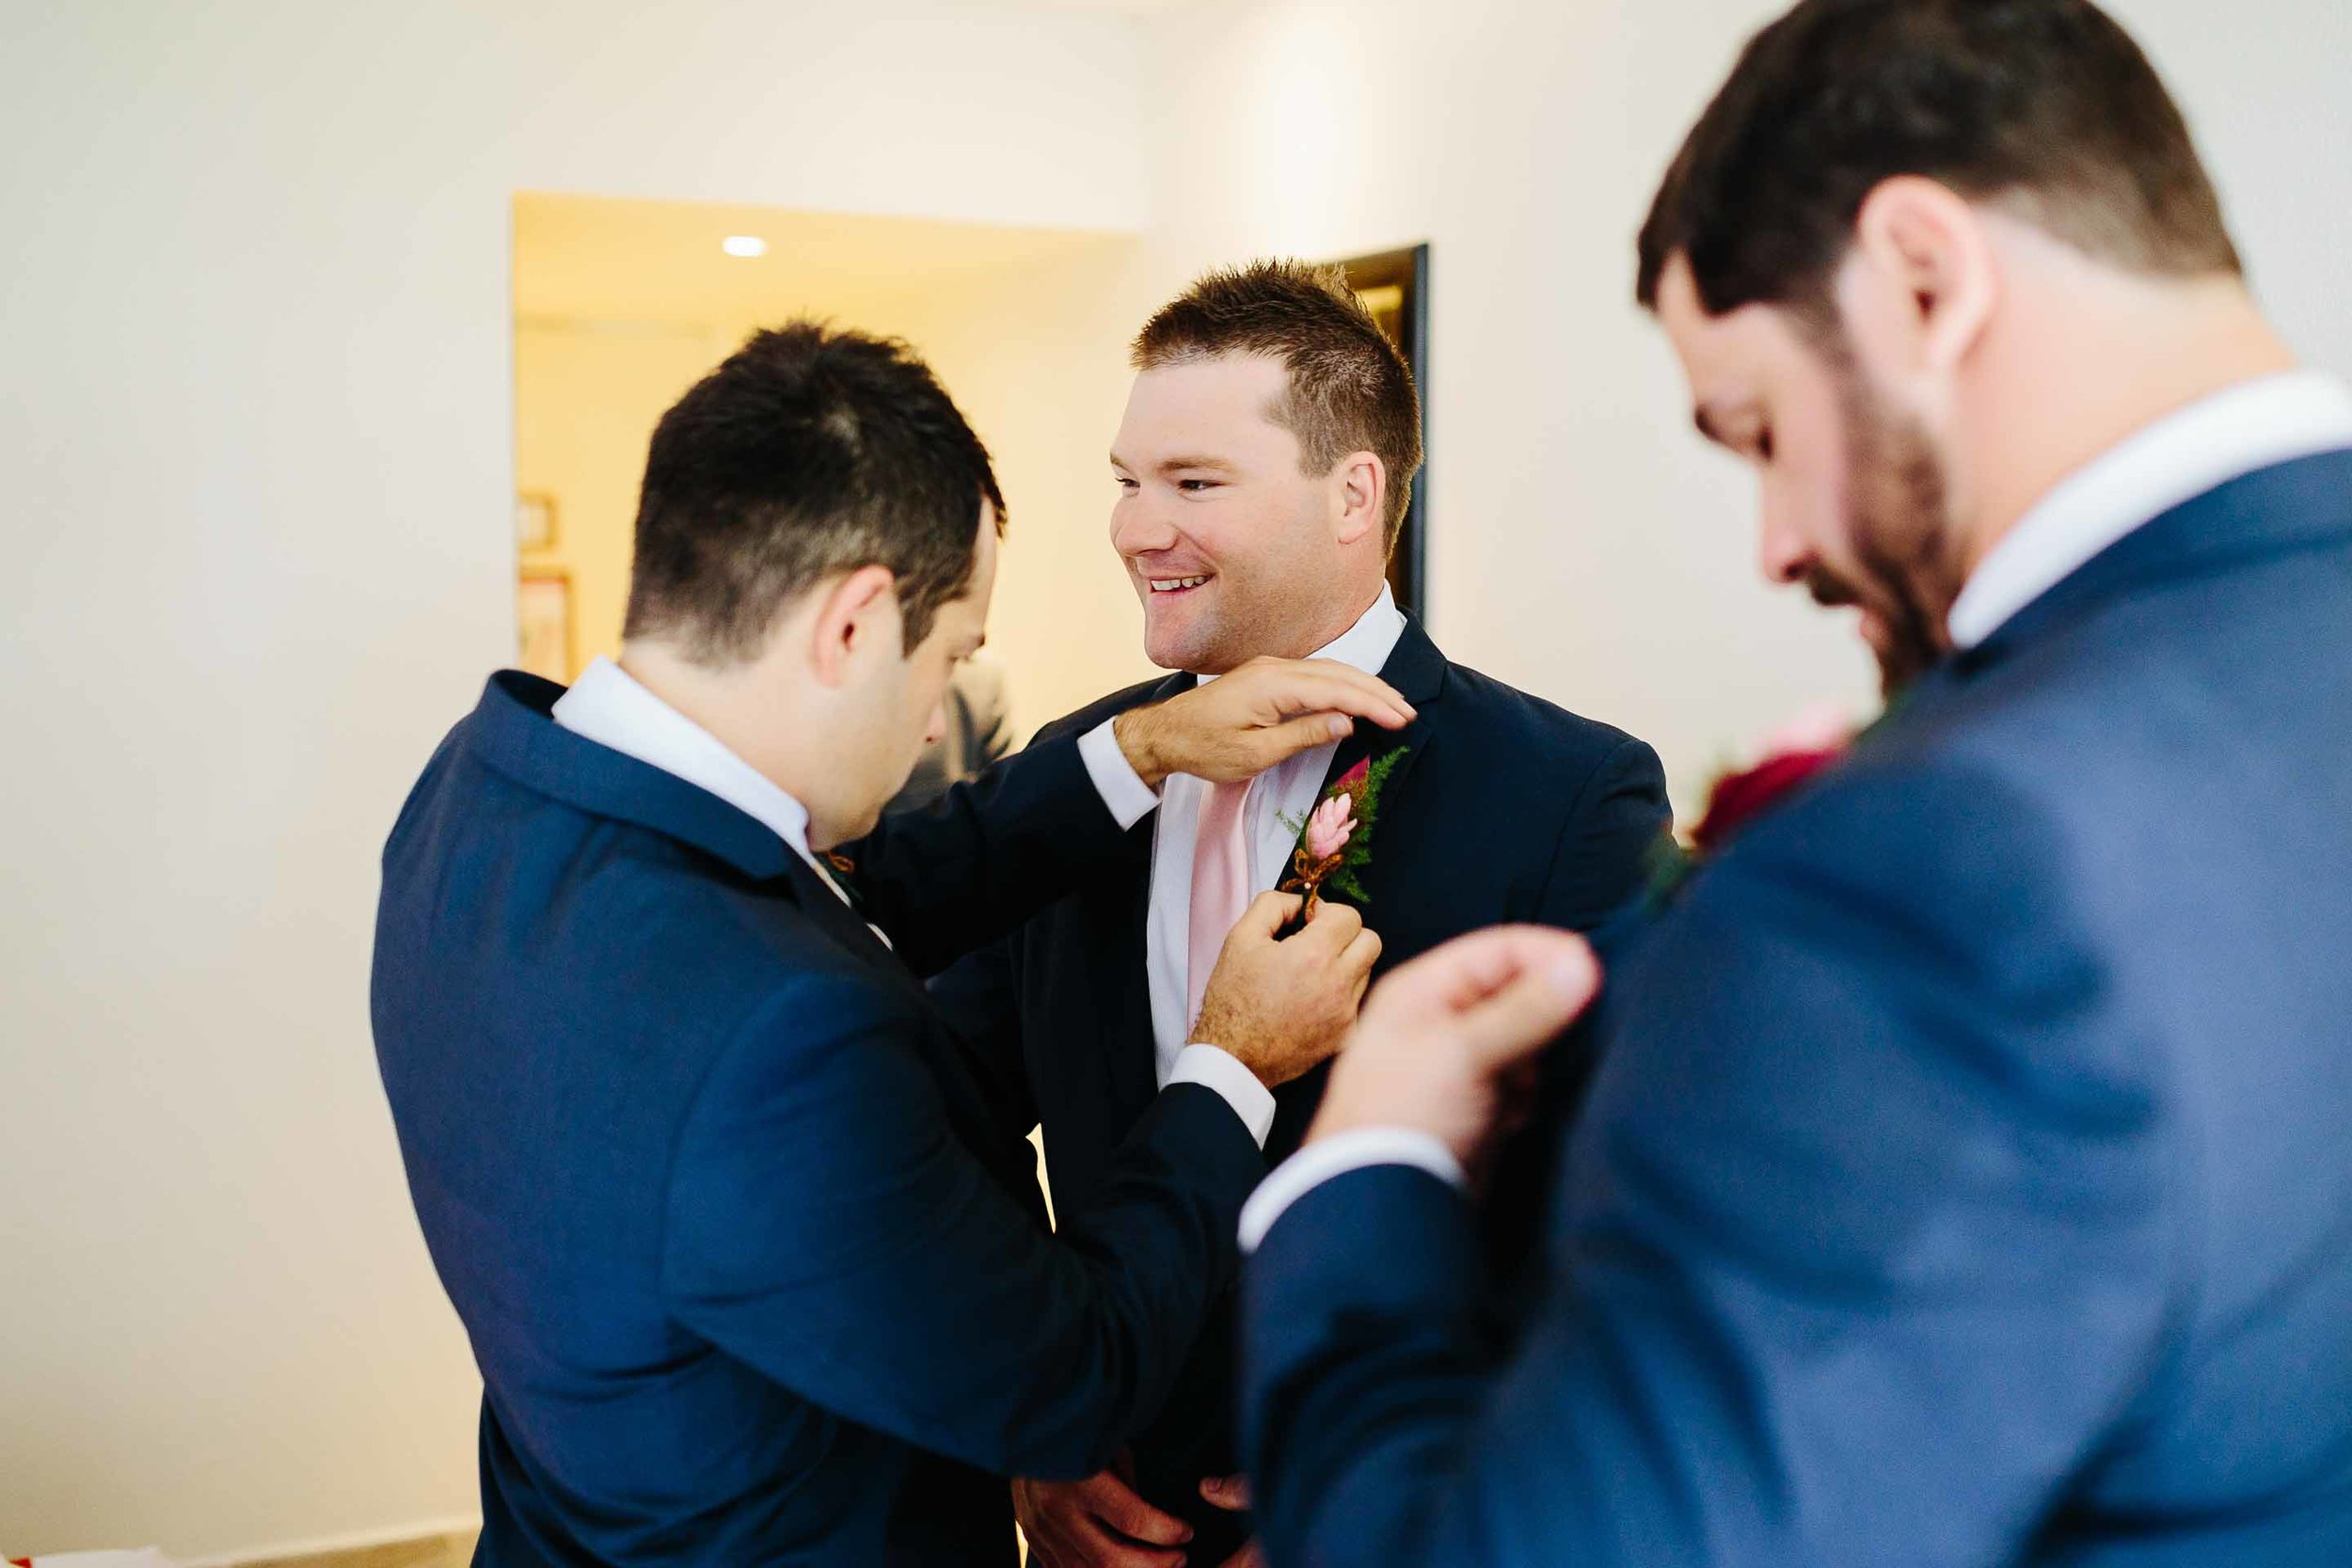 groom helping groomsman with boutonniere